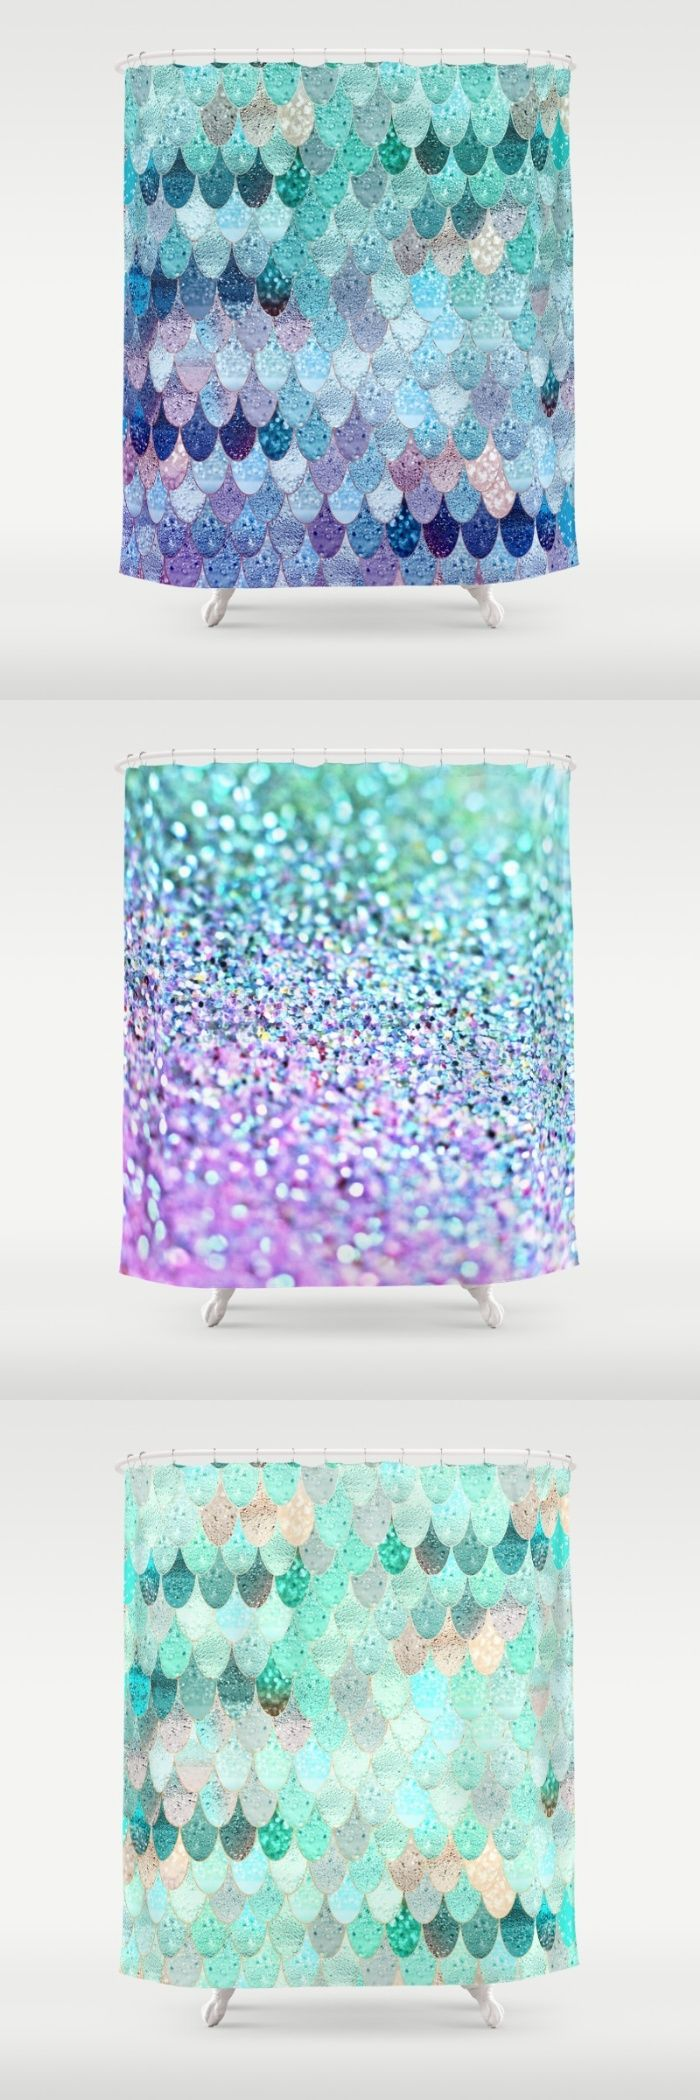 SUMMER MERMAID II Shower Curtain. Mermaid BedroomGirl Bathroom DecorMermaid  ...